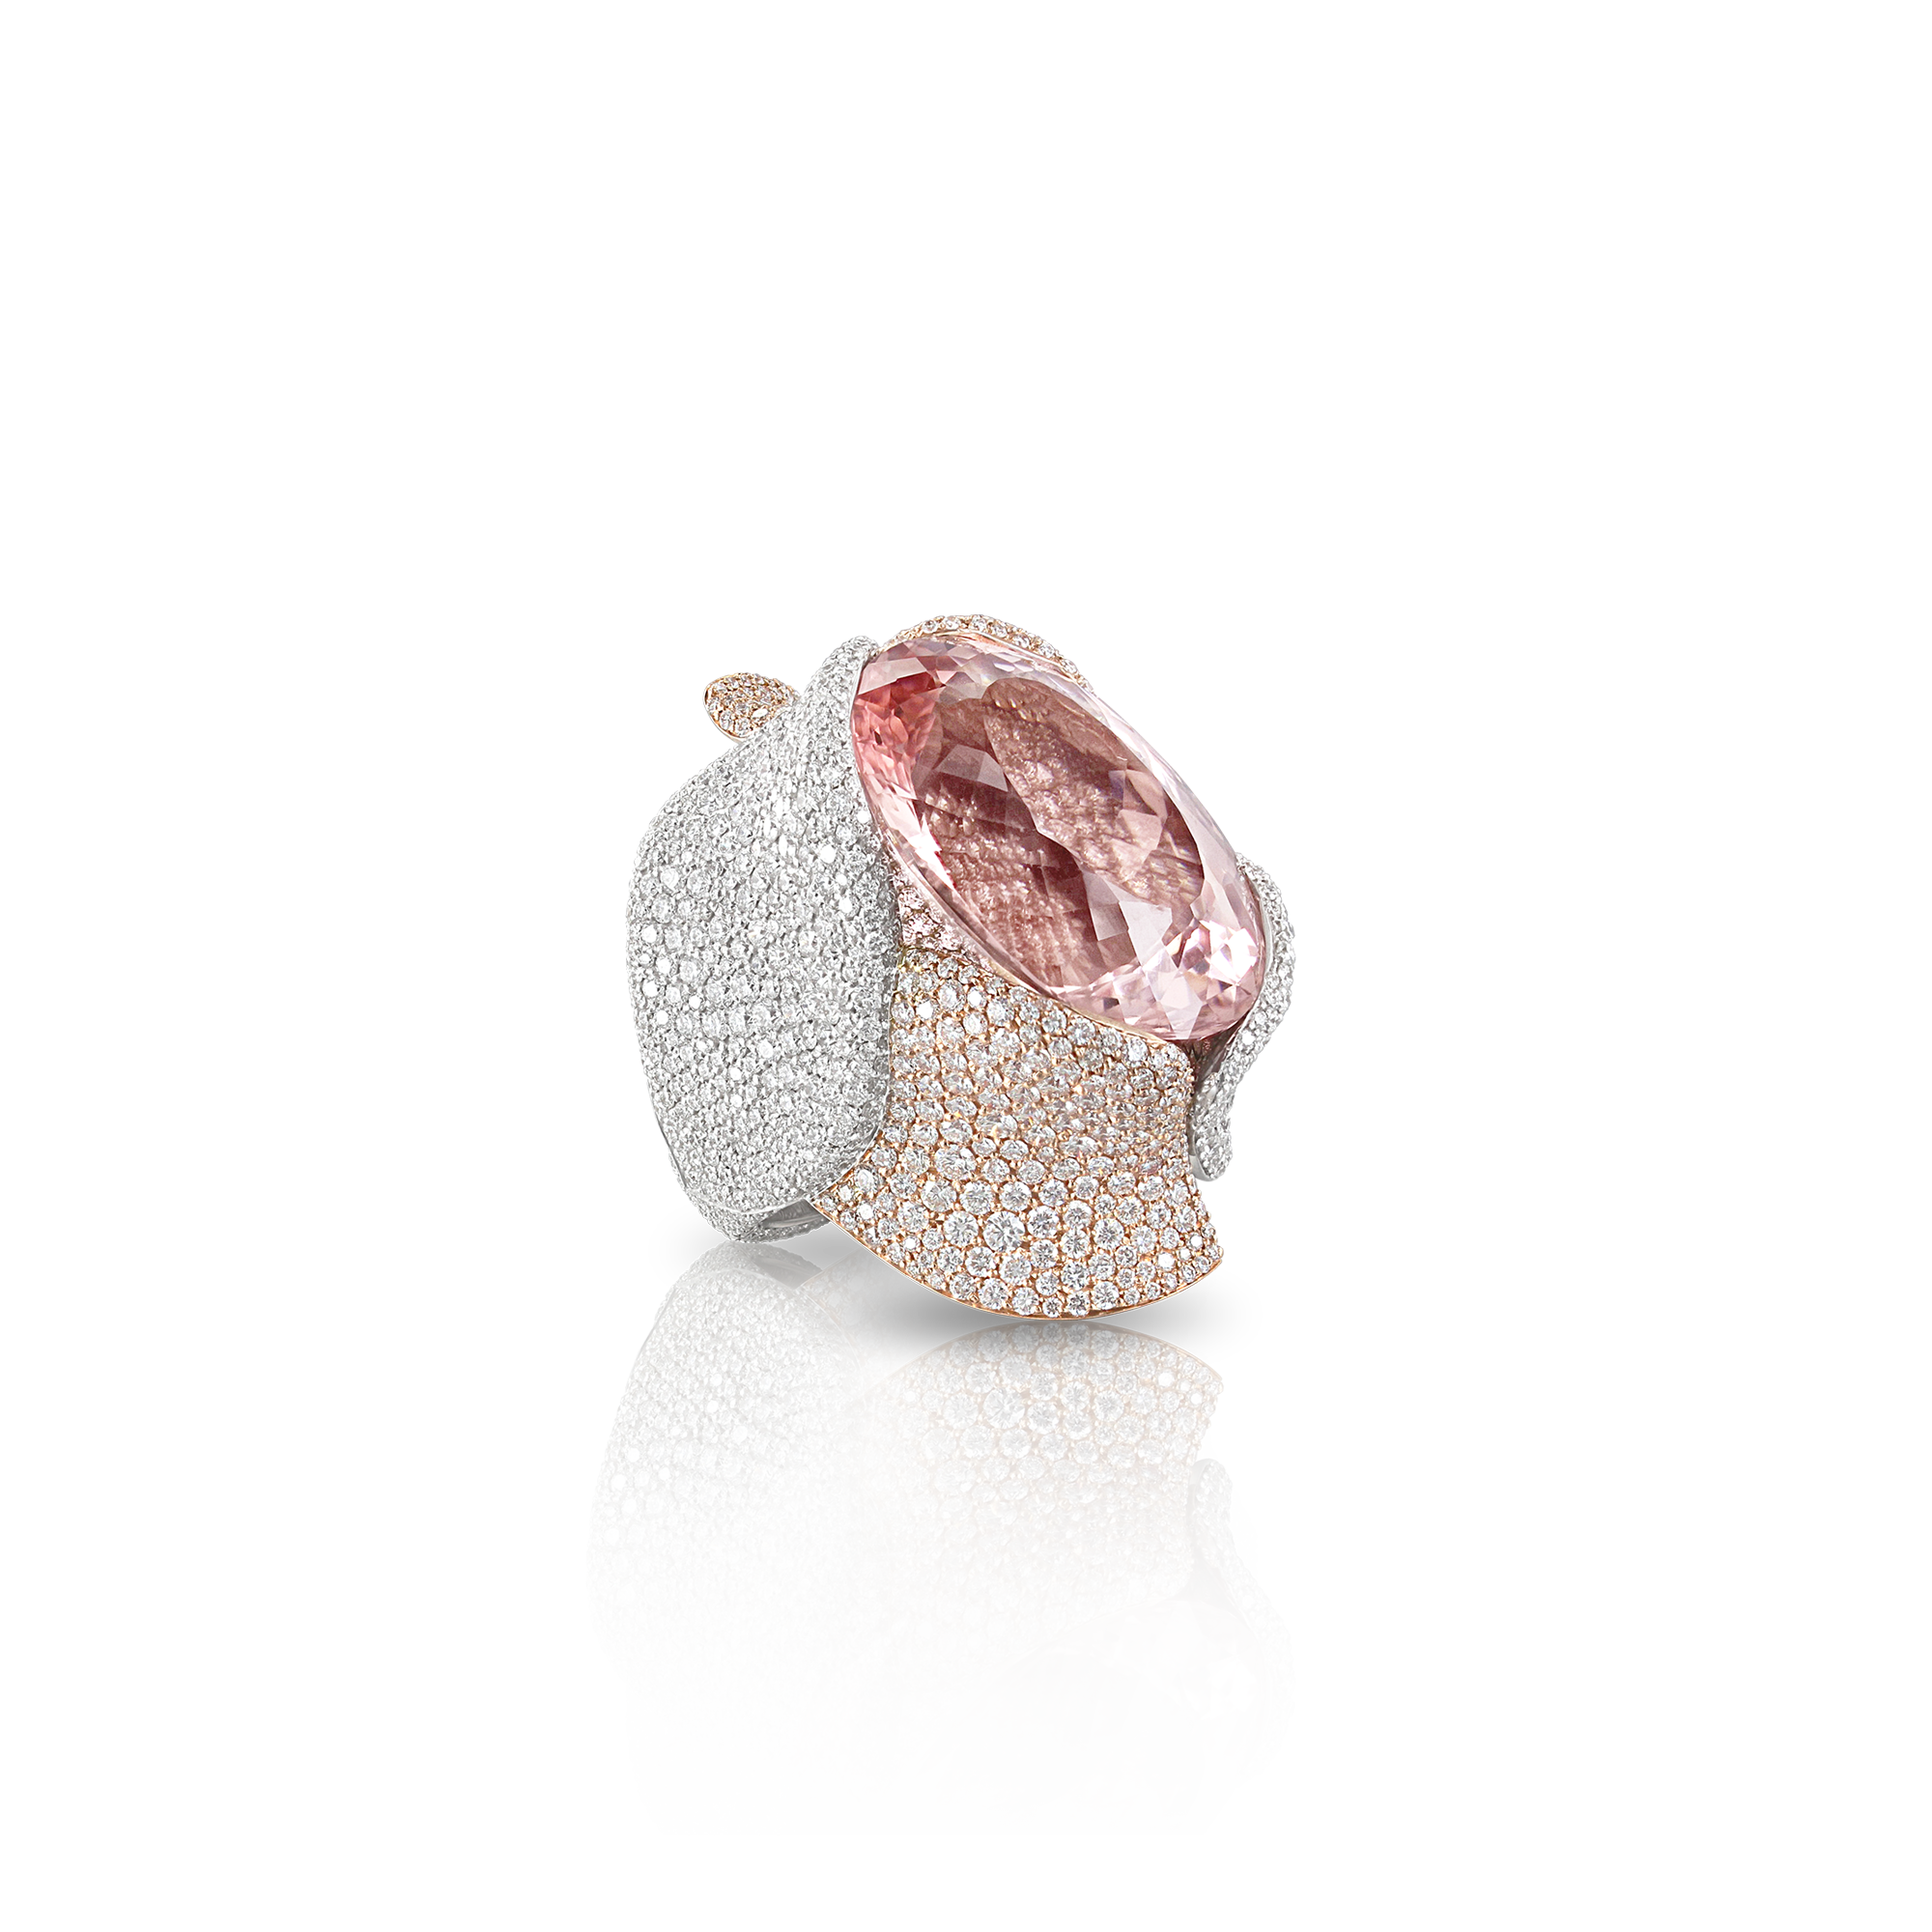 18k White and Rose Gold Giardini Vento Atelier Ring with Morganite and Diamonds